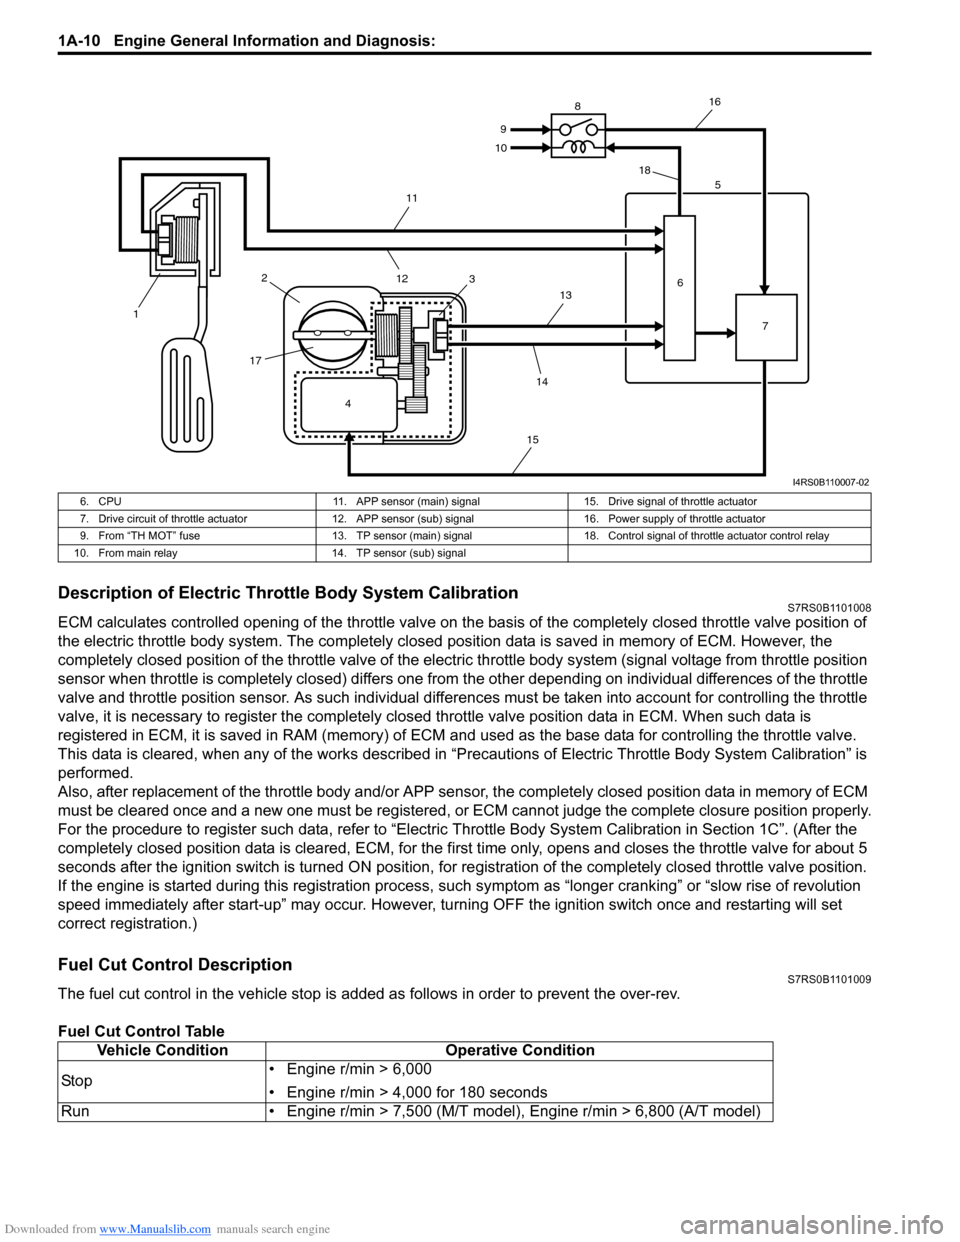 SUZUKI SWIFT 2007 2.G Service Workshop Manual Downloaded from www.Manualslib.com manuals search engine 1A-10 Engine General Information and Diagnosis:  Description of Electric Throttle Body System CalibrationS7RS0B1101008 ECM calculates controlle